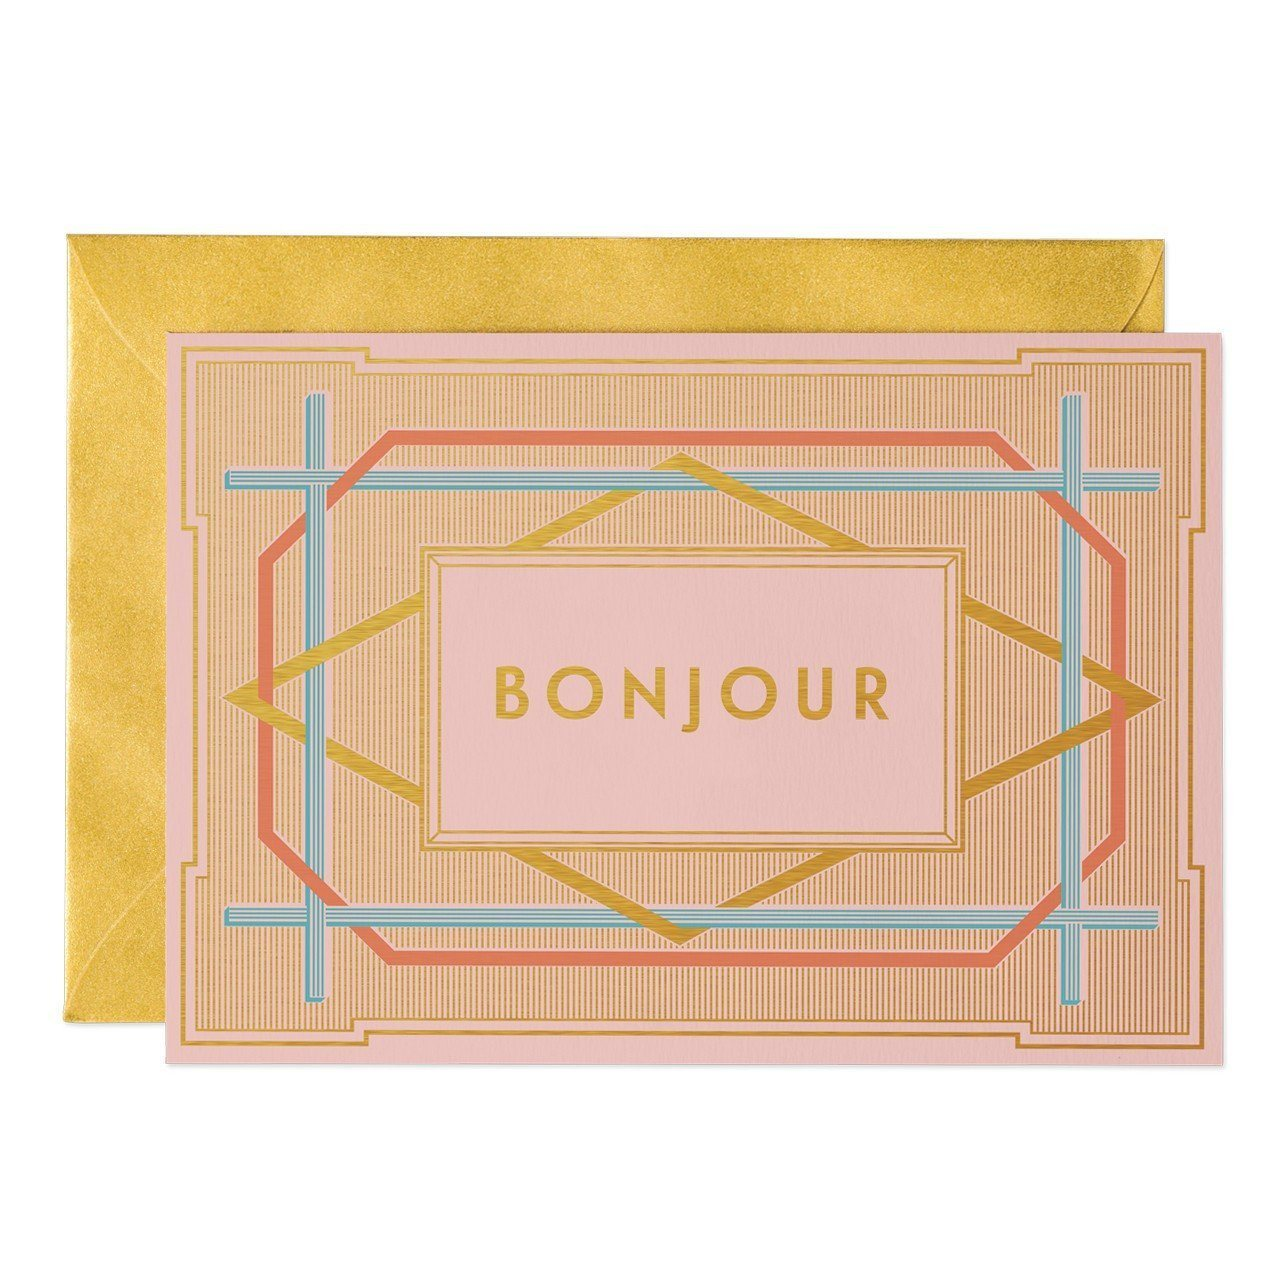 Bonjour - Art Deco greeting card